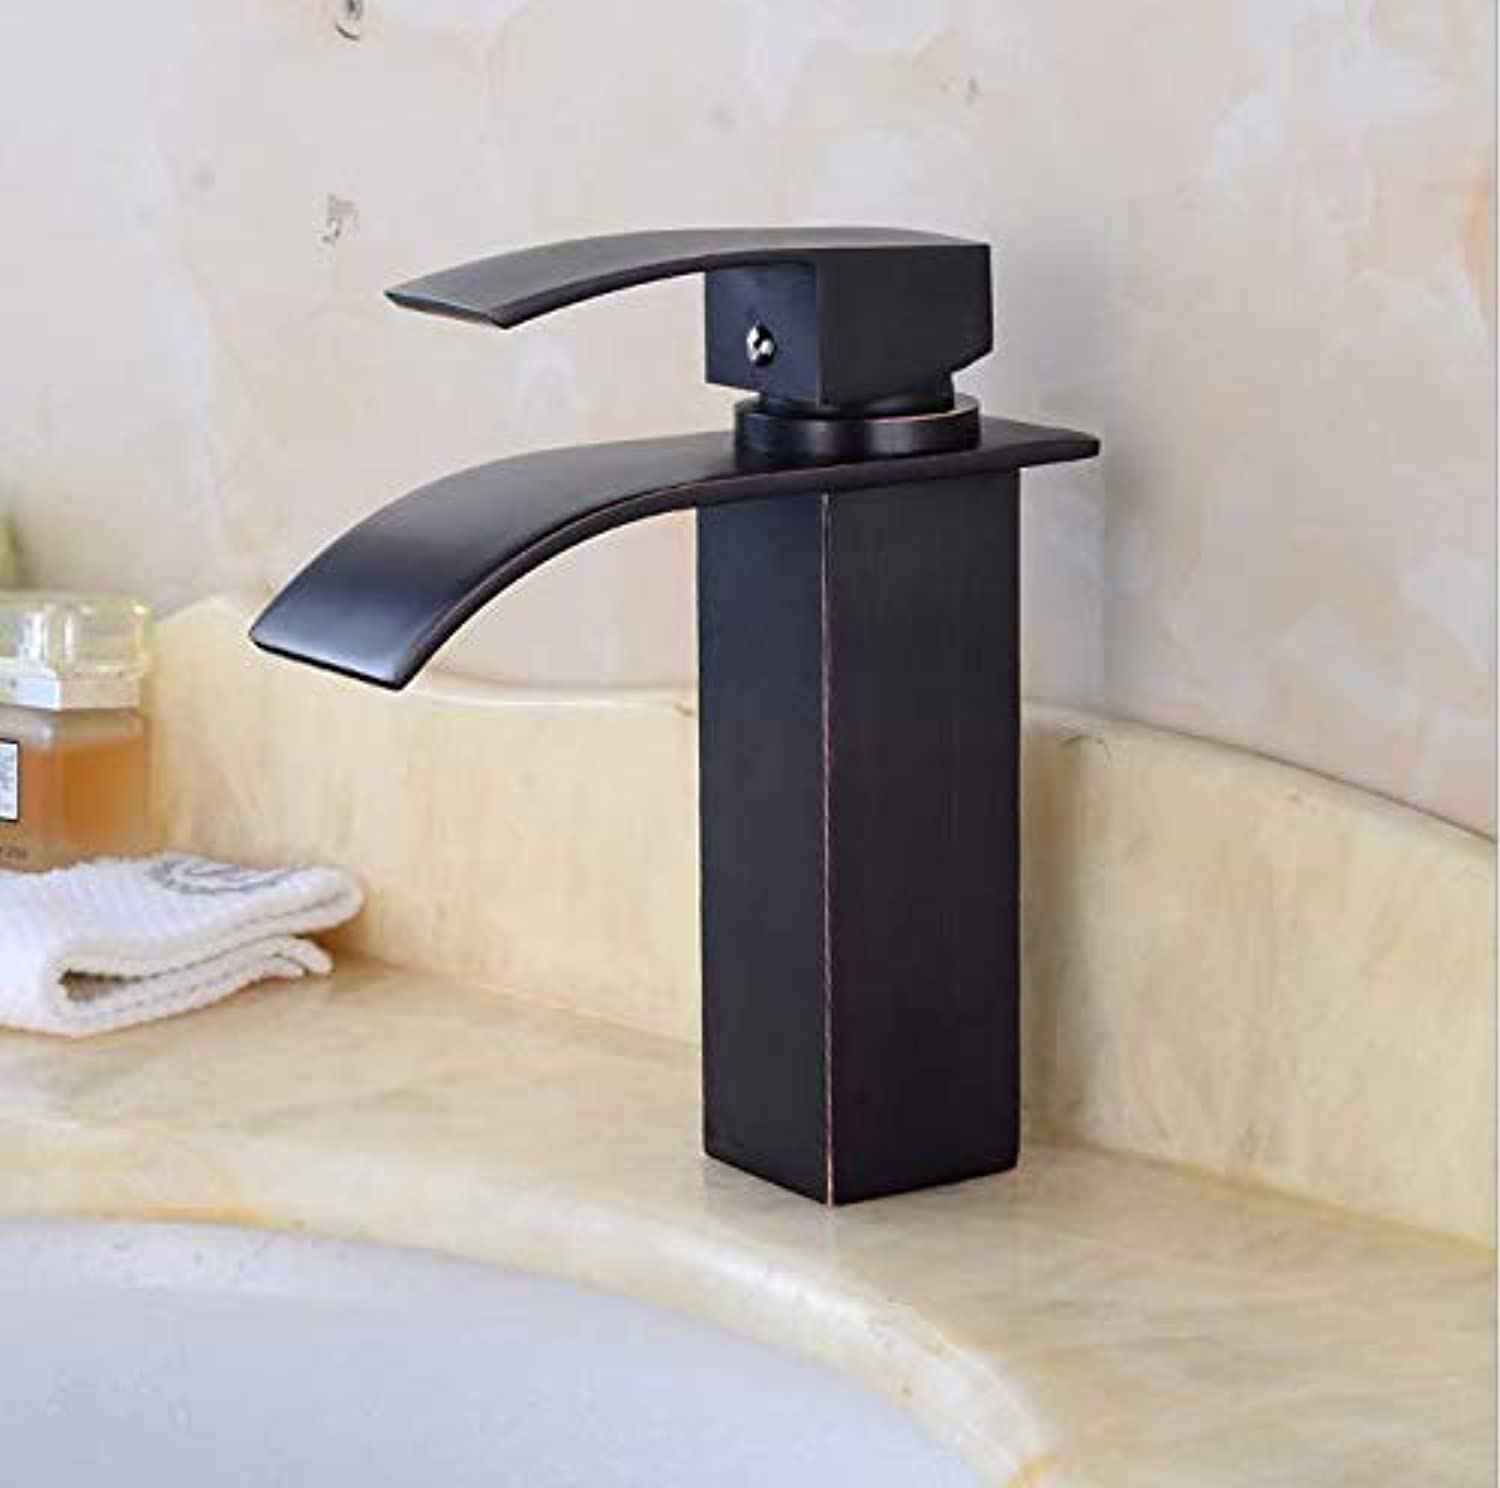 Retro Deluxe Fauceting European-Style Black Ancient Waterfall Faucet Bathroom Basin Cold and Hot Water Faucet Beneath Copper Faucet Basin